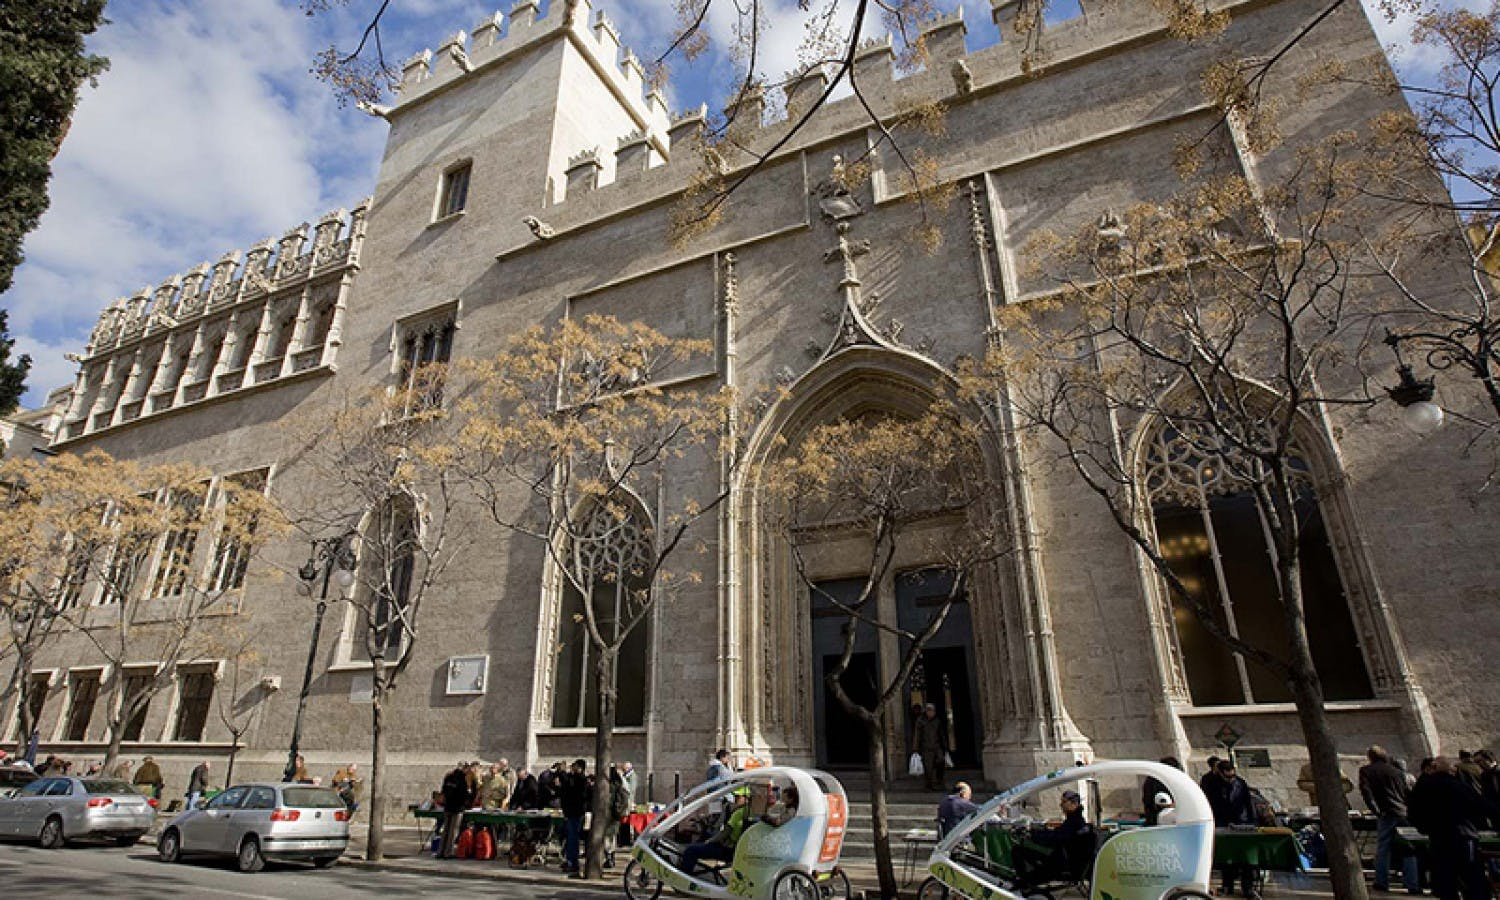 Valencia gastronomical tour with wine tasting